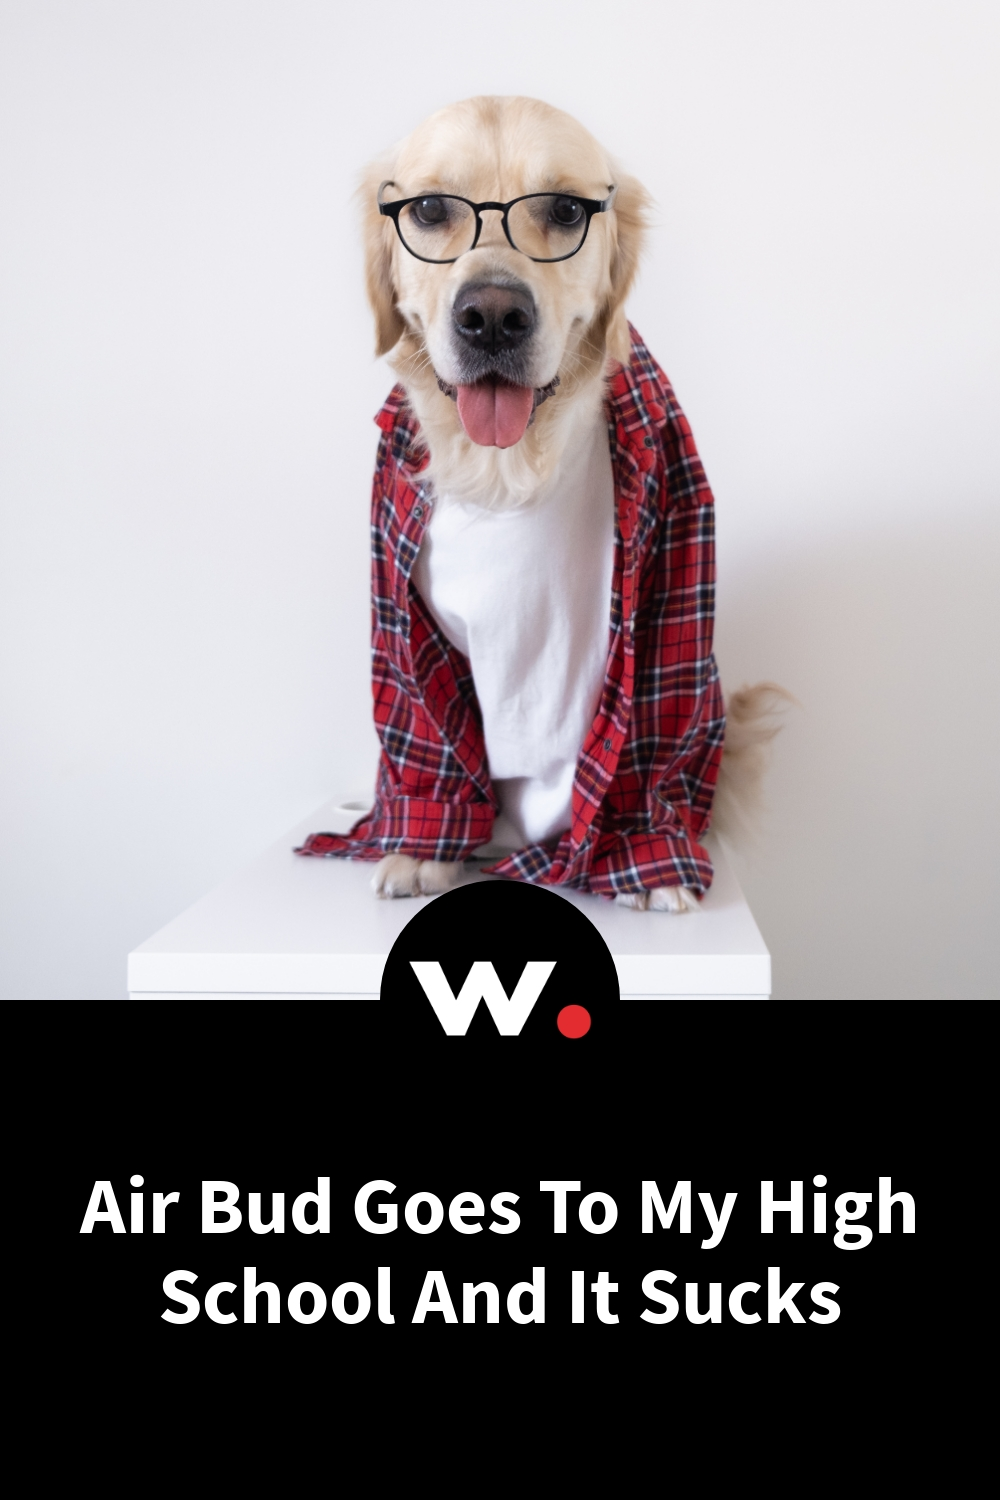 Air Bud Goes To My High School And It Sucks